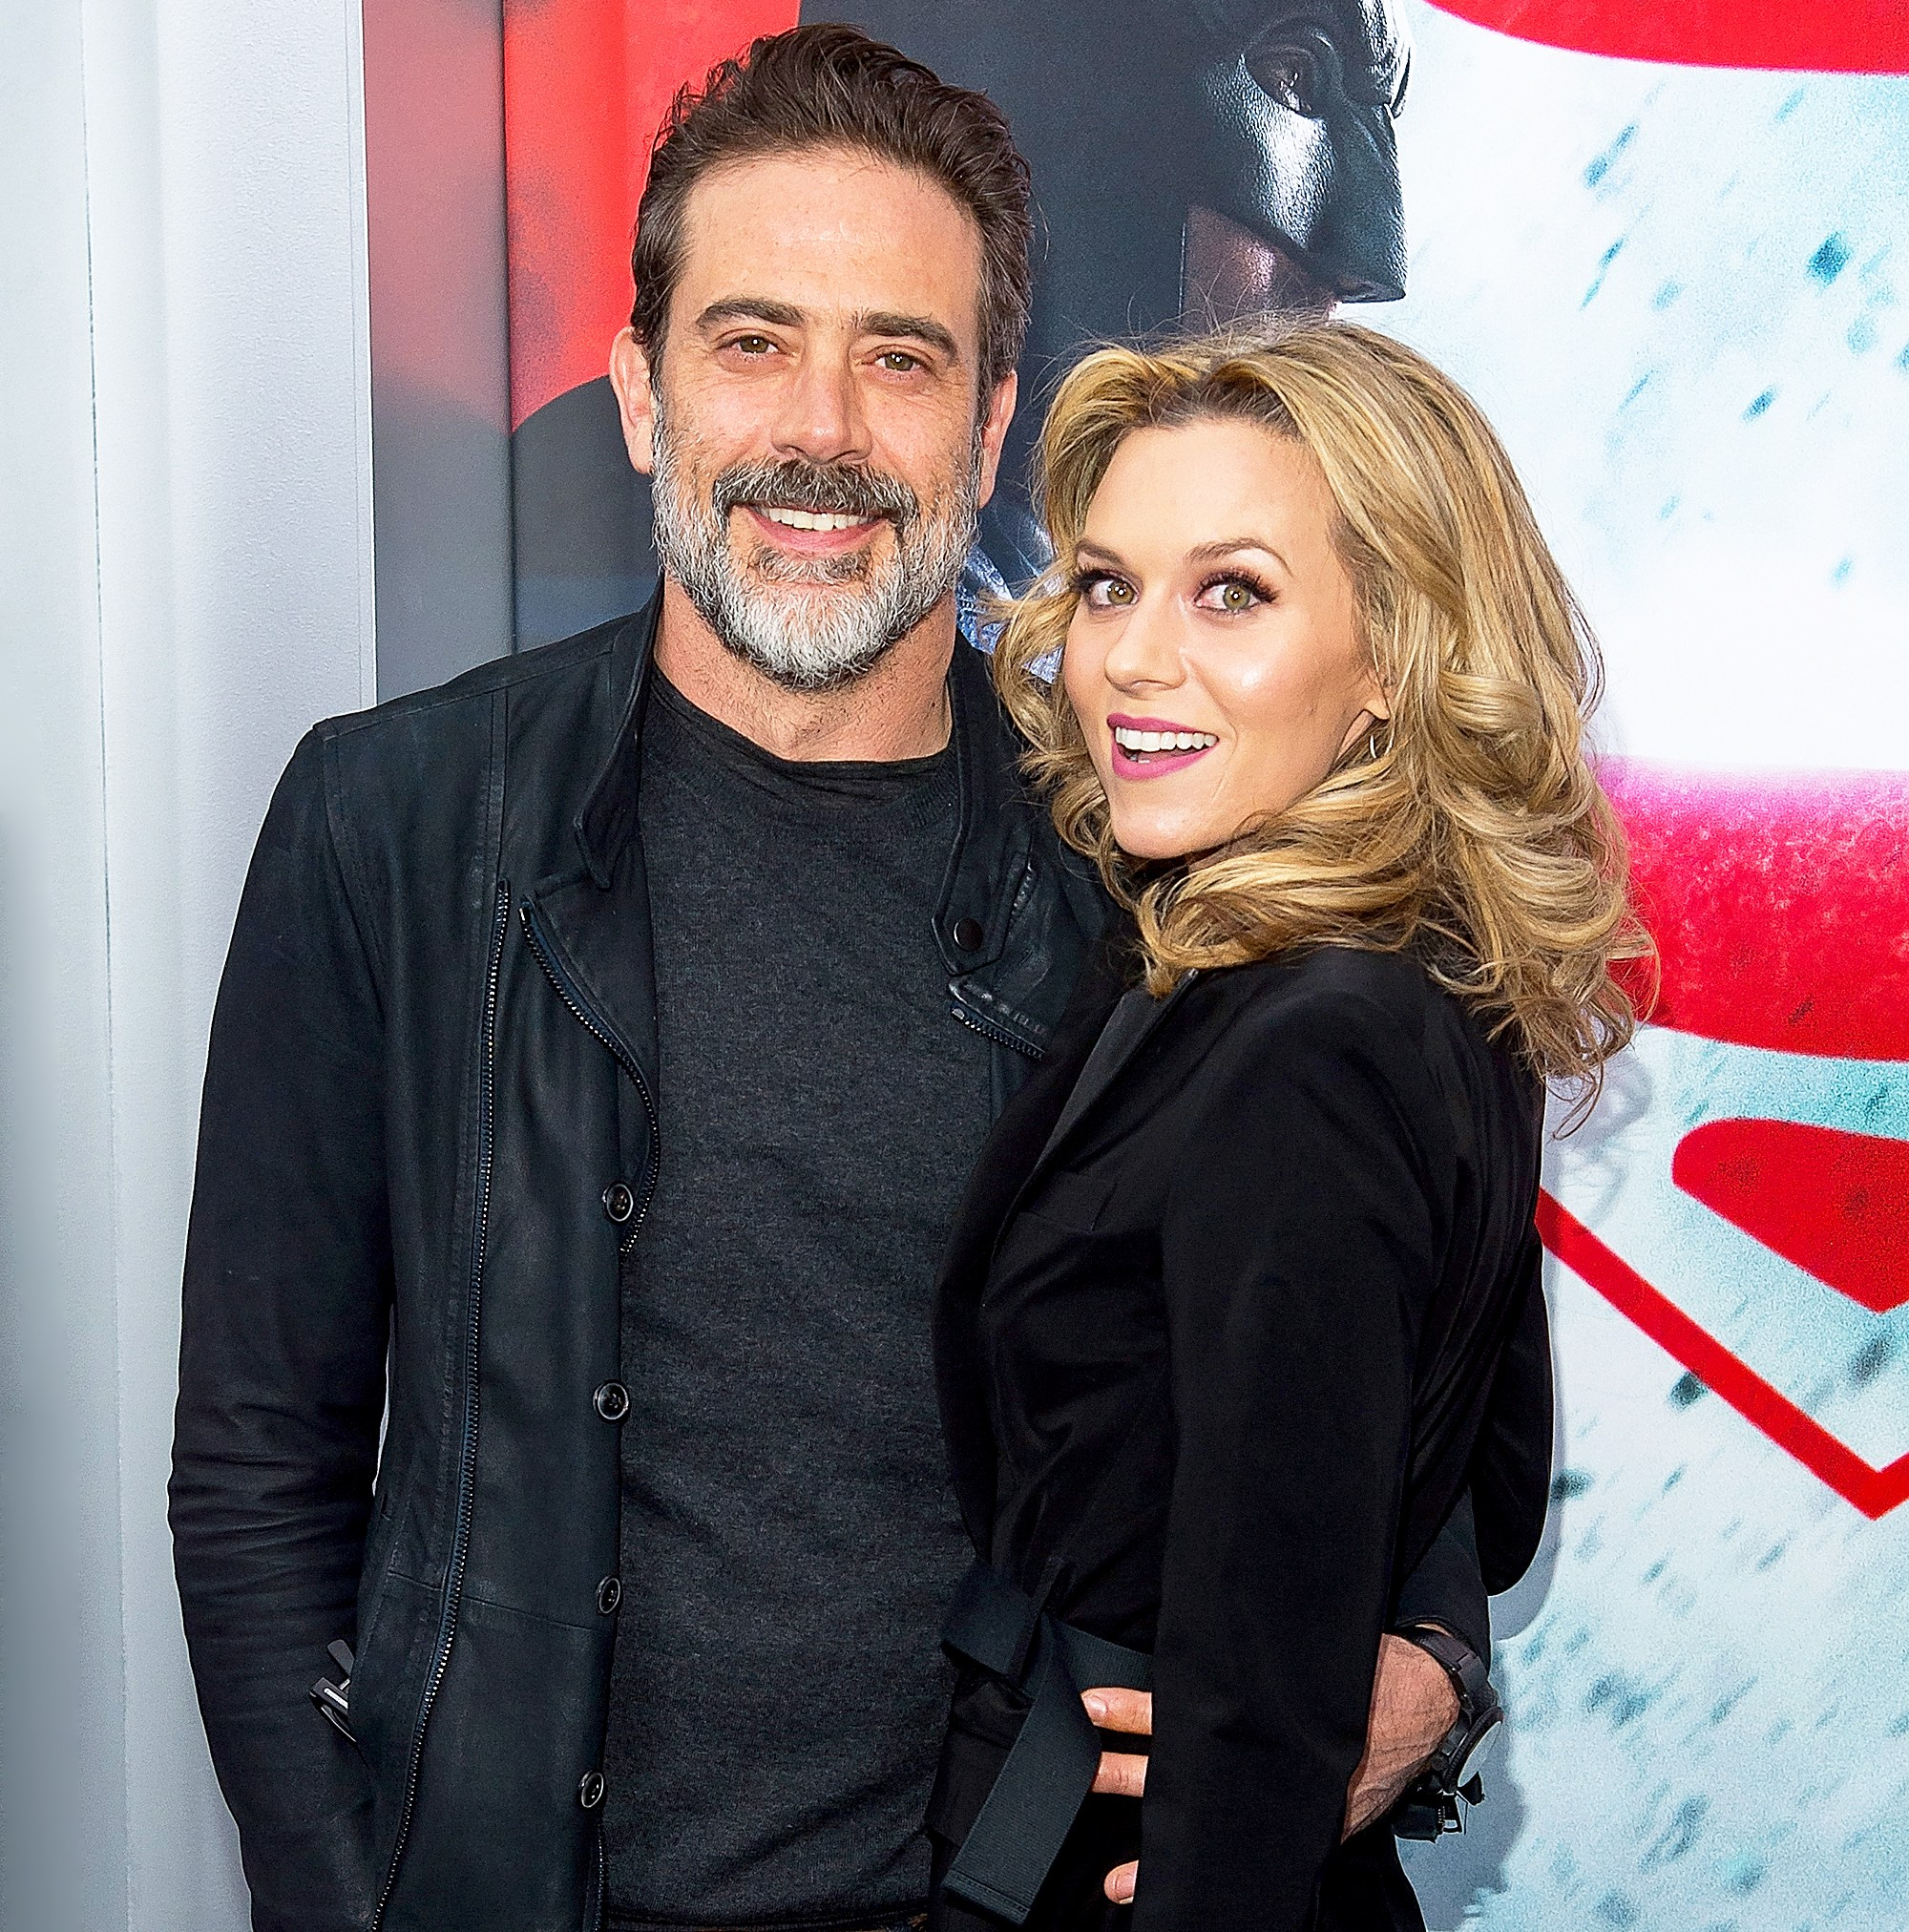 Jeffrey Dean Morgan and Hilarie Burton attend the Batman V Superman: Dawn Of Justice New York premiere at Radio City Music Hall on March 20, 2016 in New York City.